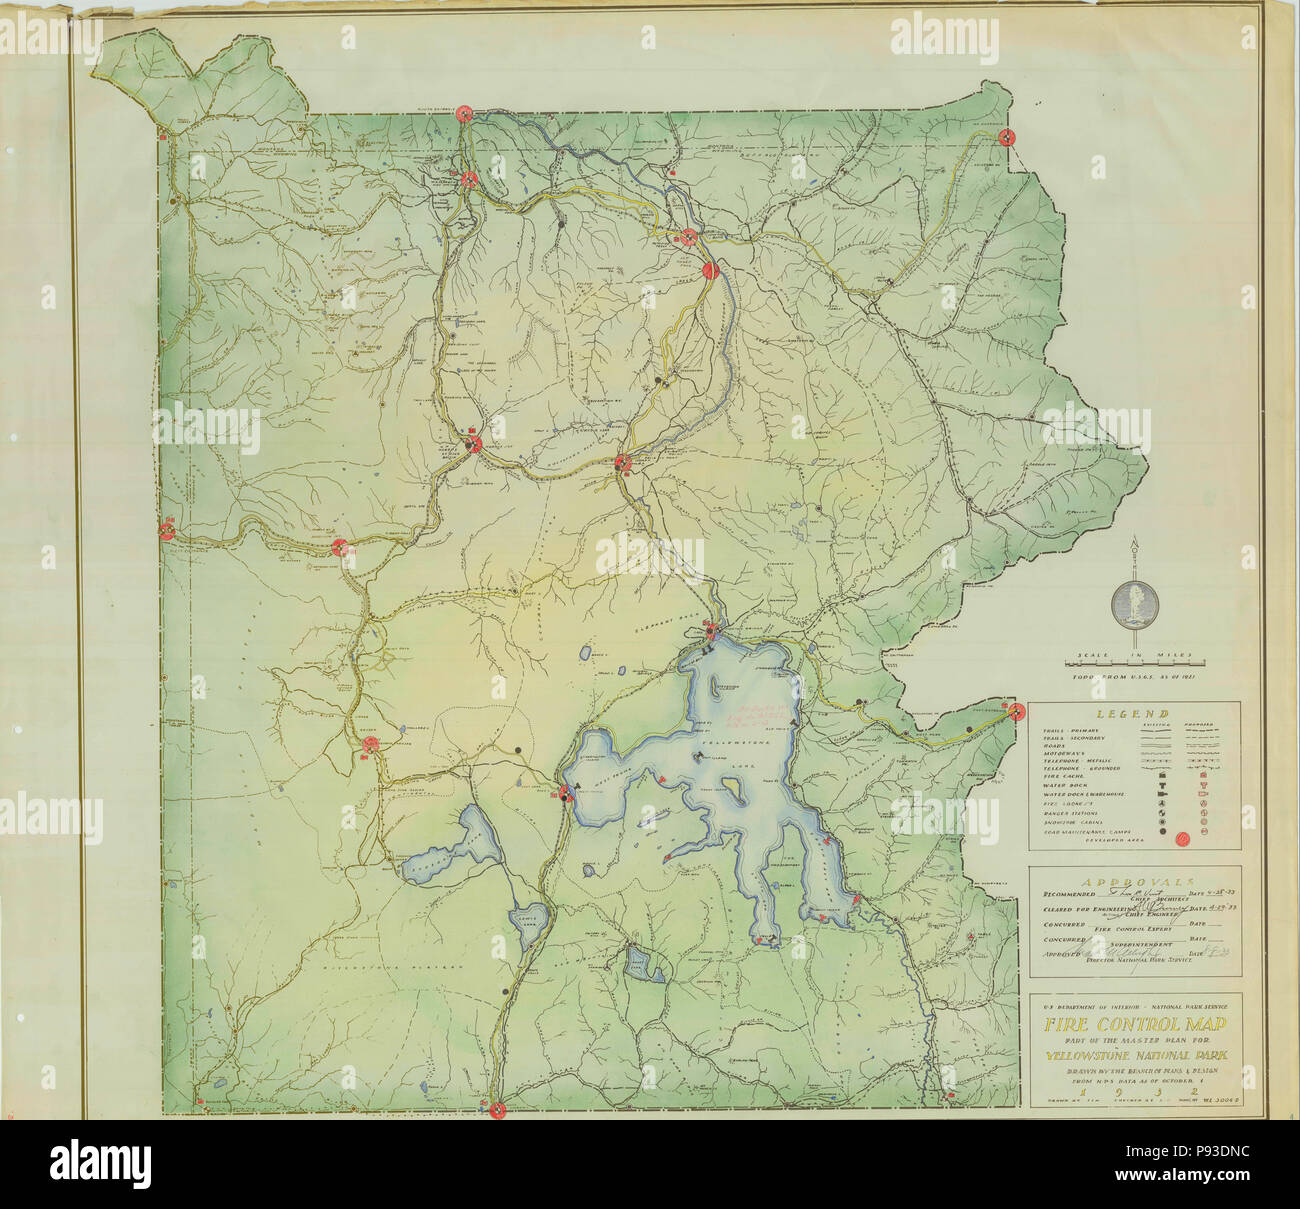 1932 Brand Control Map Yellowstone National Park Stockfoto, Bild ...